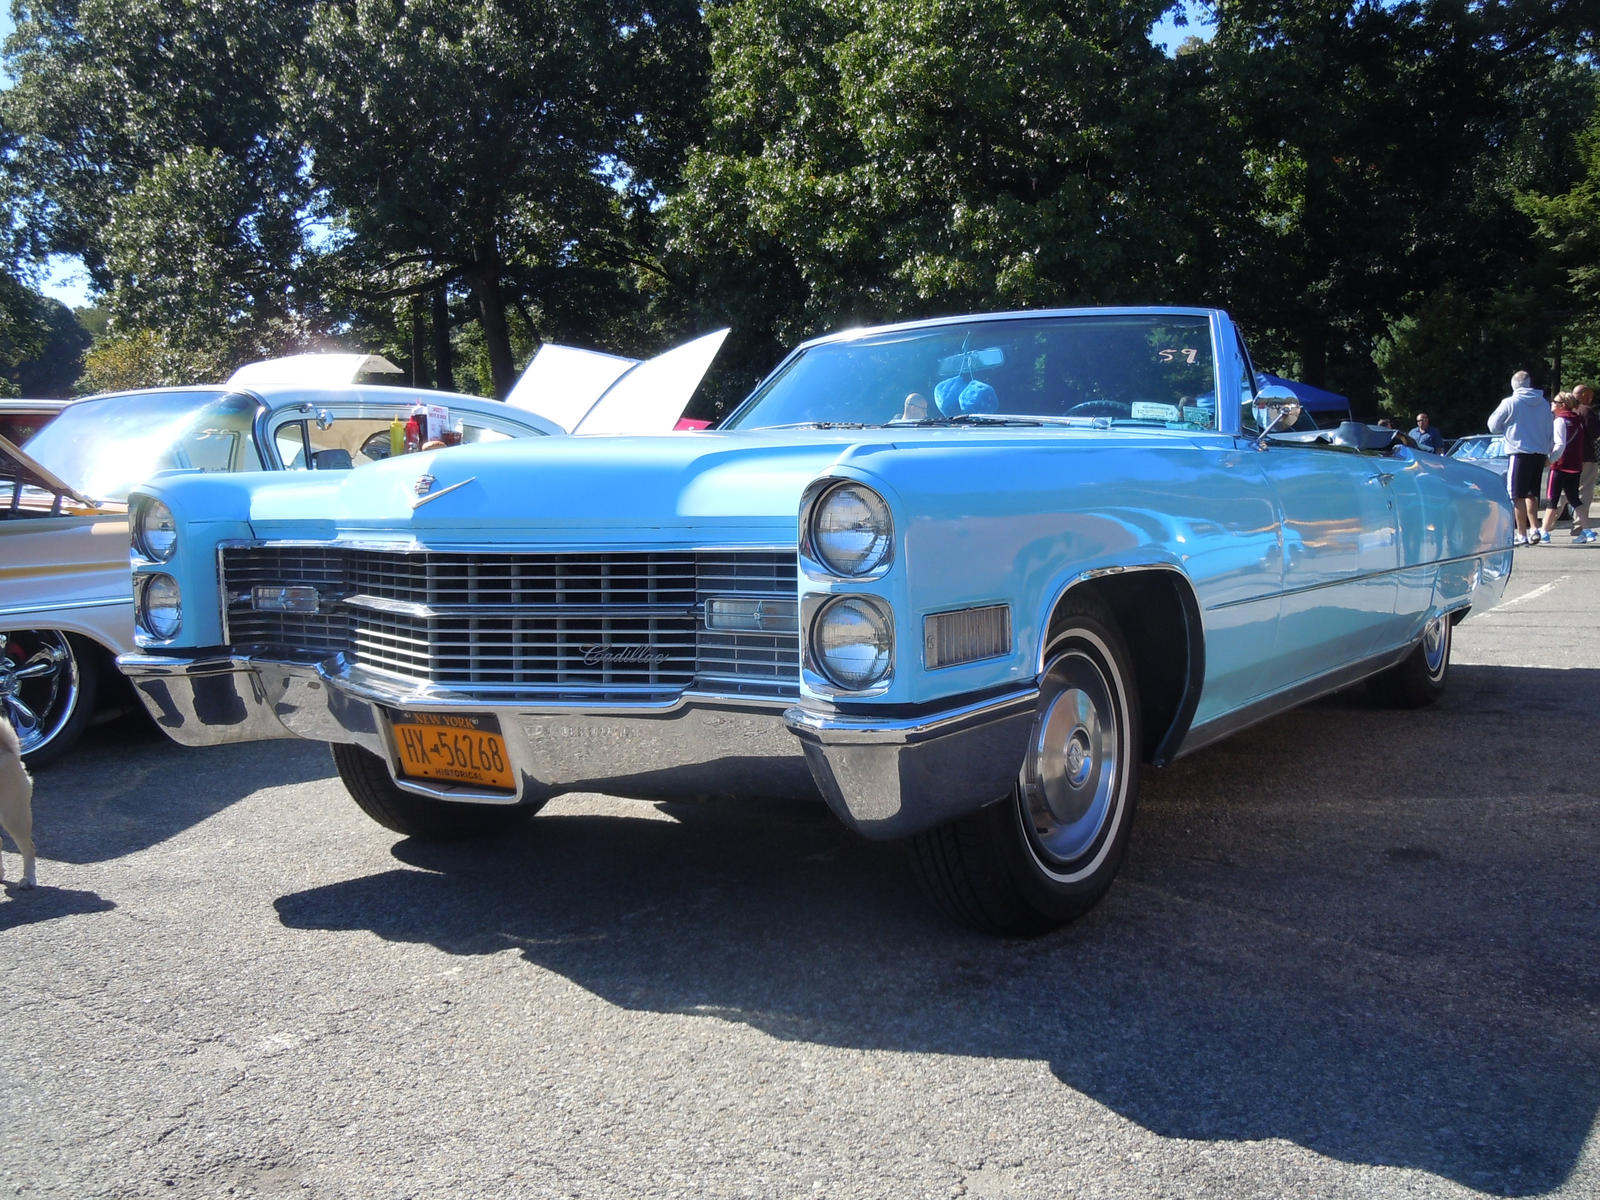 1966 cadillac coupe deville convertible iii by brooklyn47 on. Cars Review. Best American Auto & Cars Review